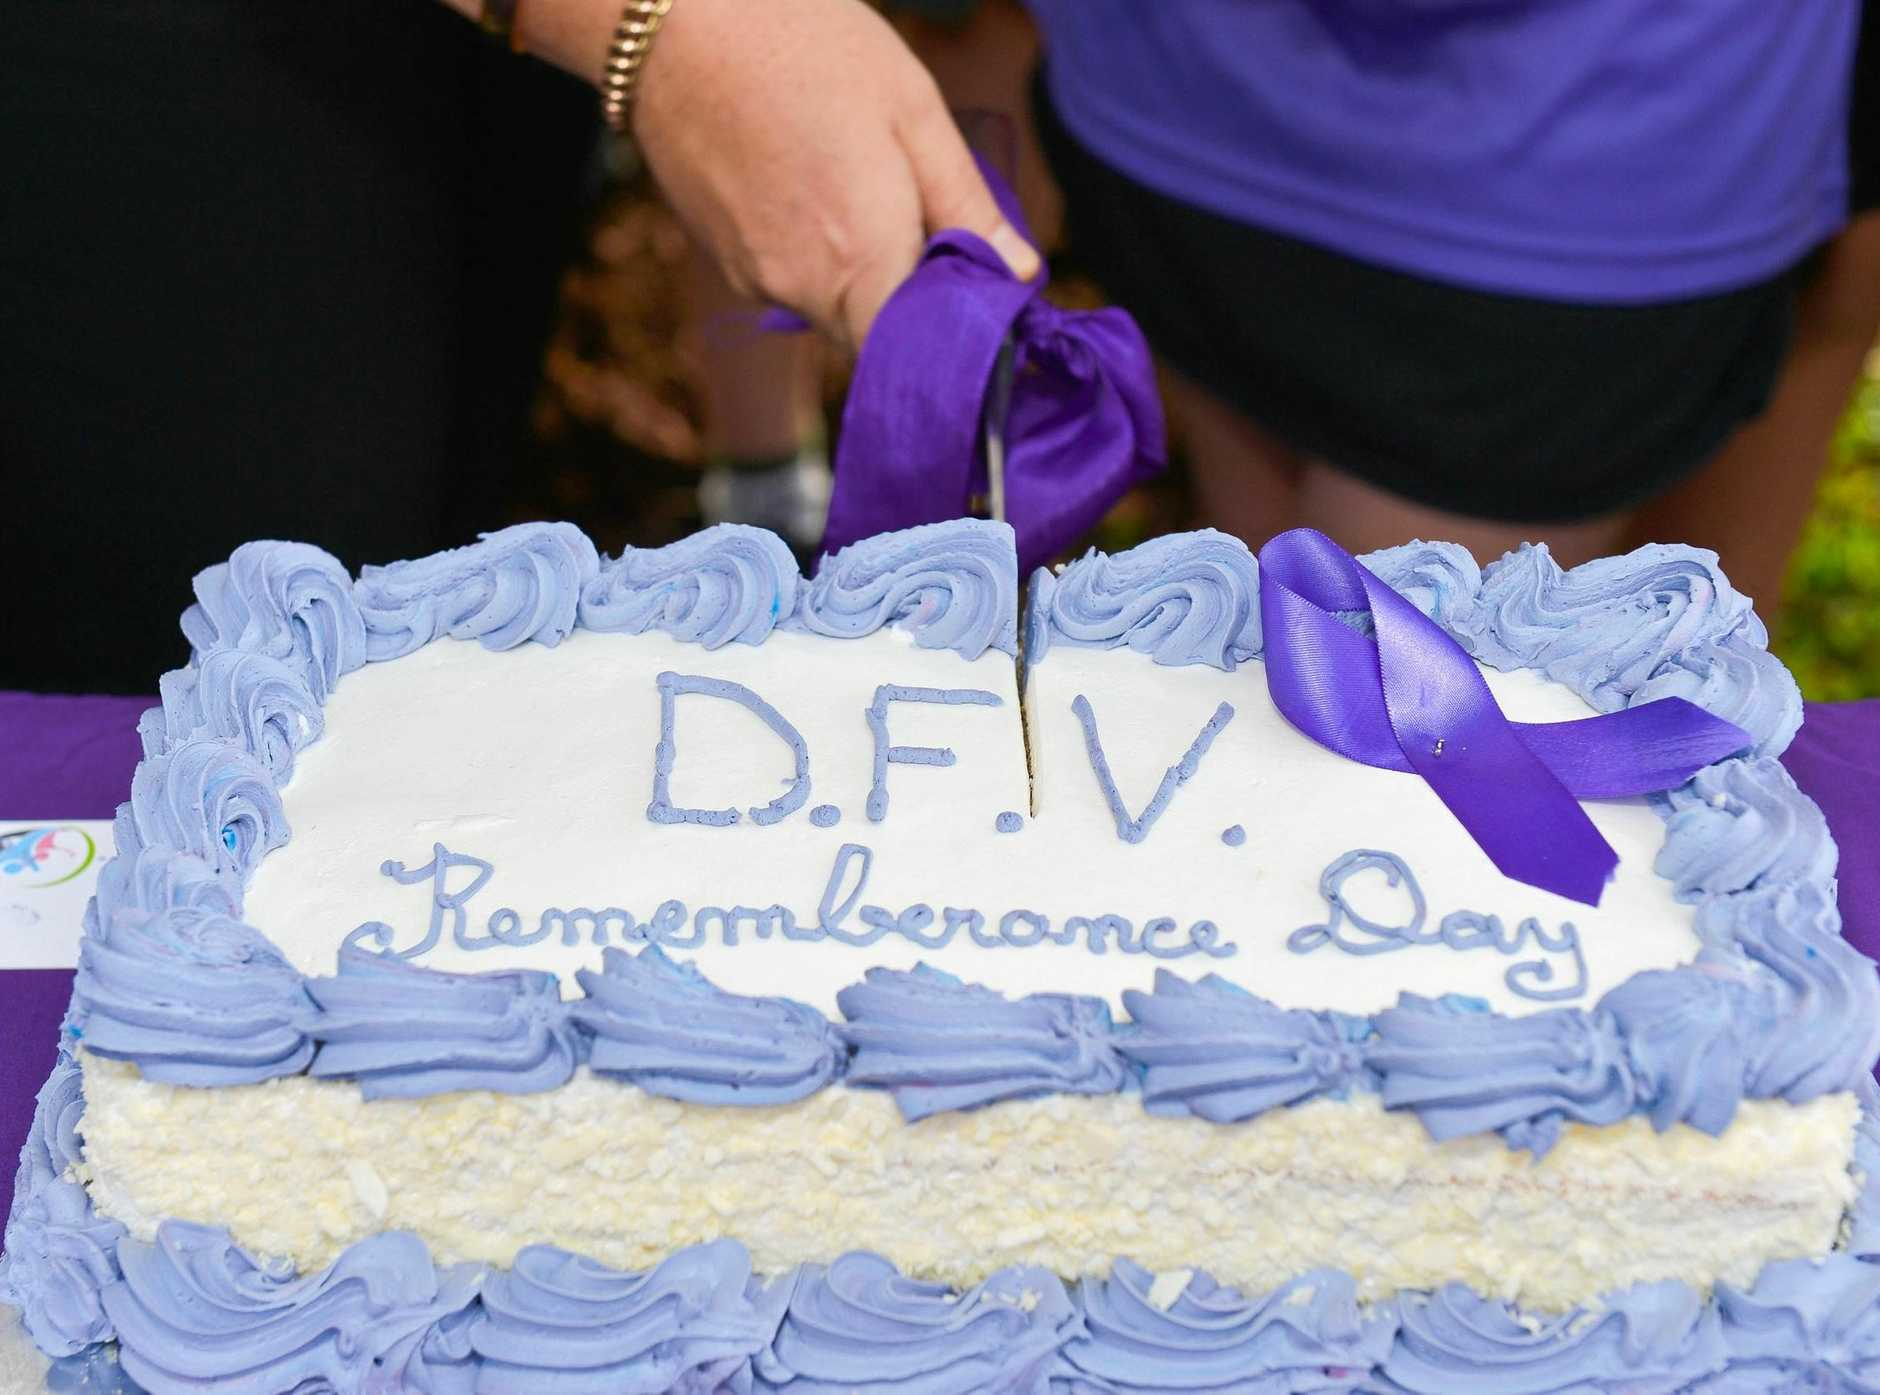 Domestic violence Rememberance Day at Friend Park, Barney Pt.